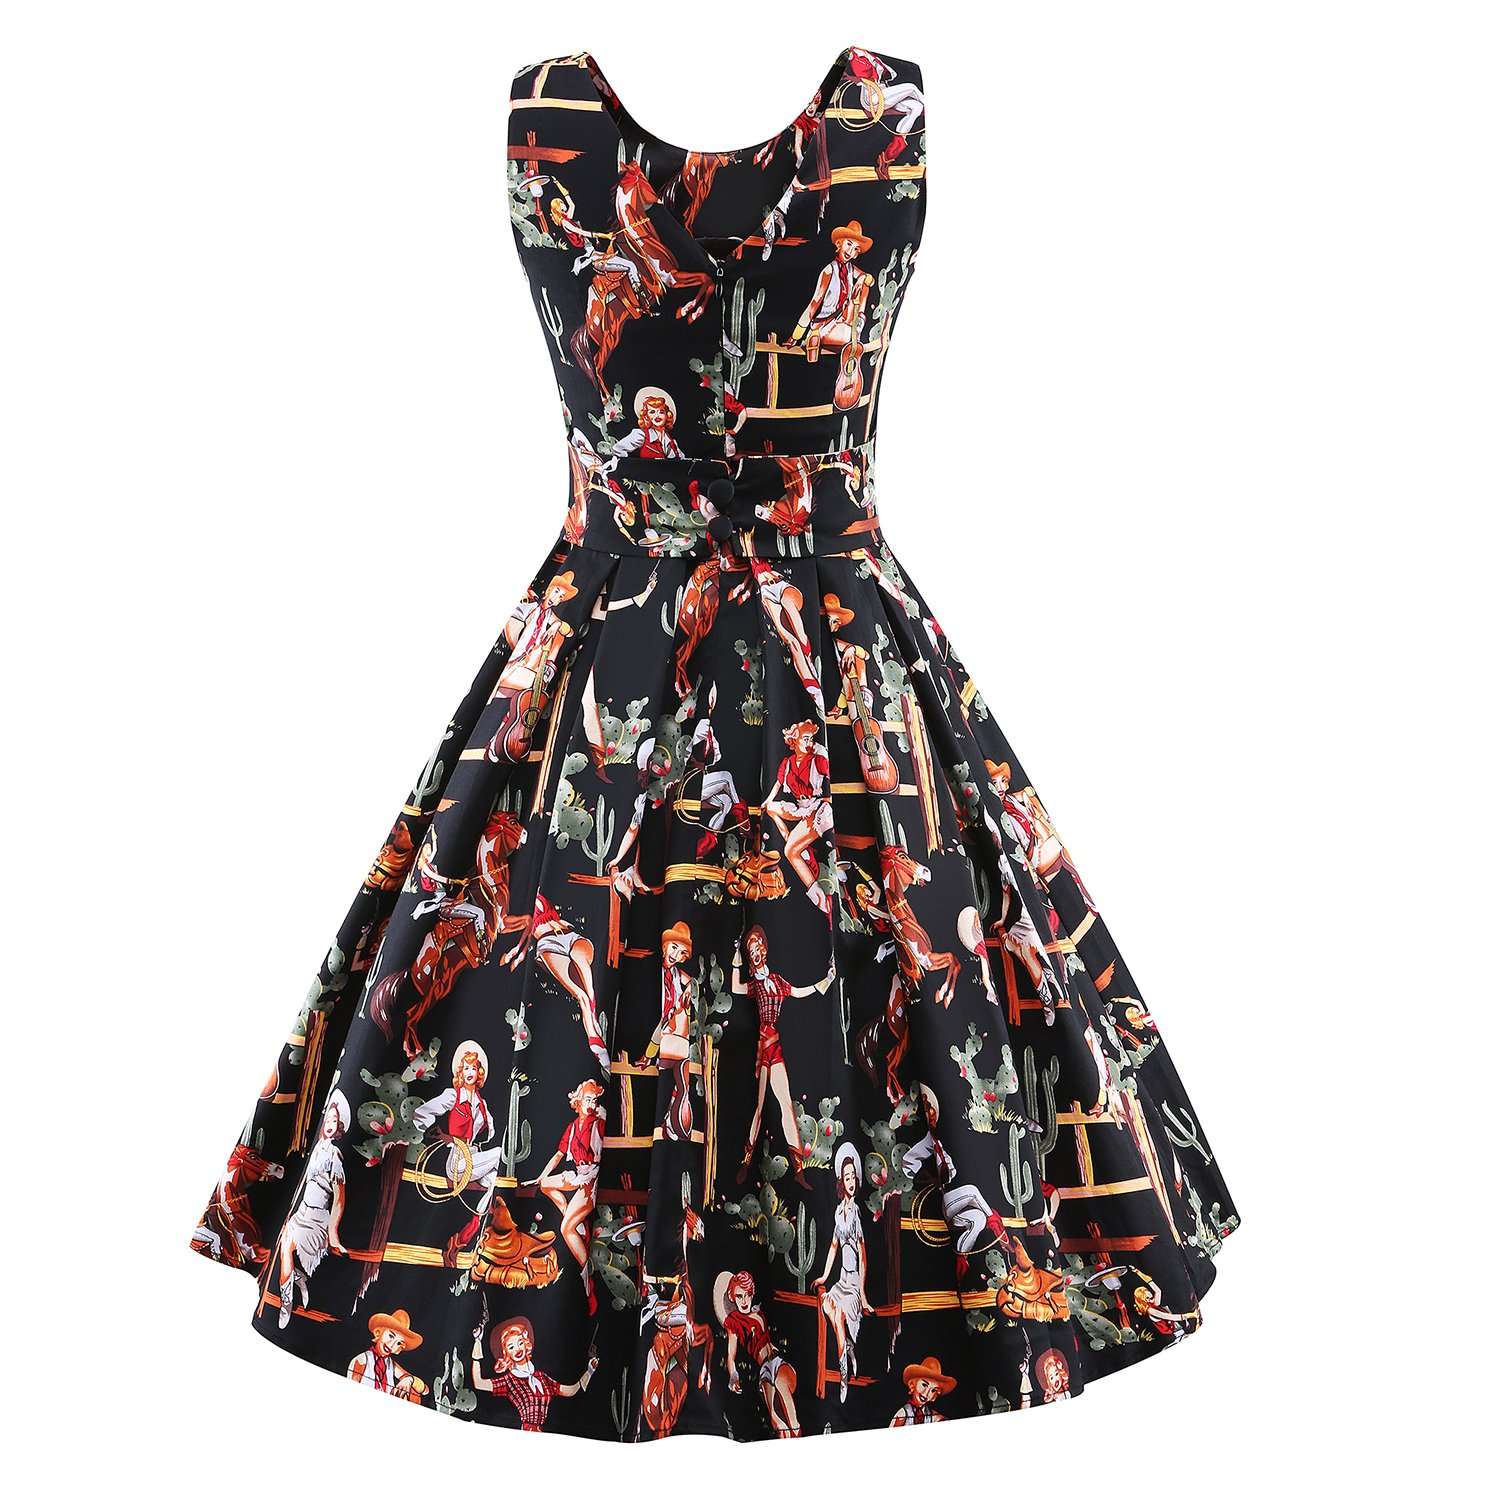 175d138d62b Amazon.com  LUOUSE  Lana  Vintage 1950 s Inspired Rockabilly Swing Dress  black-2 Small  Clothing